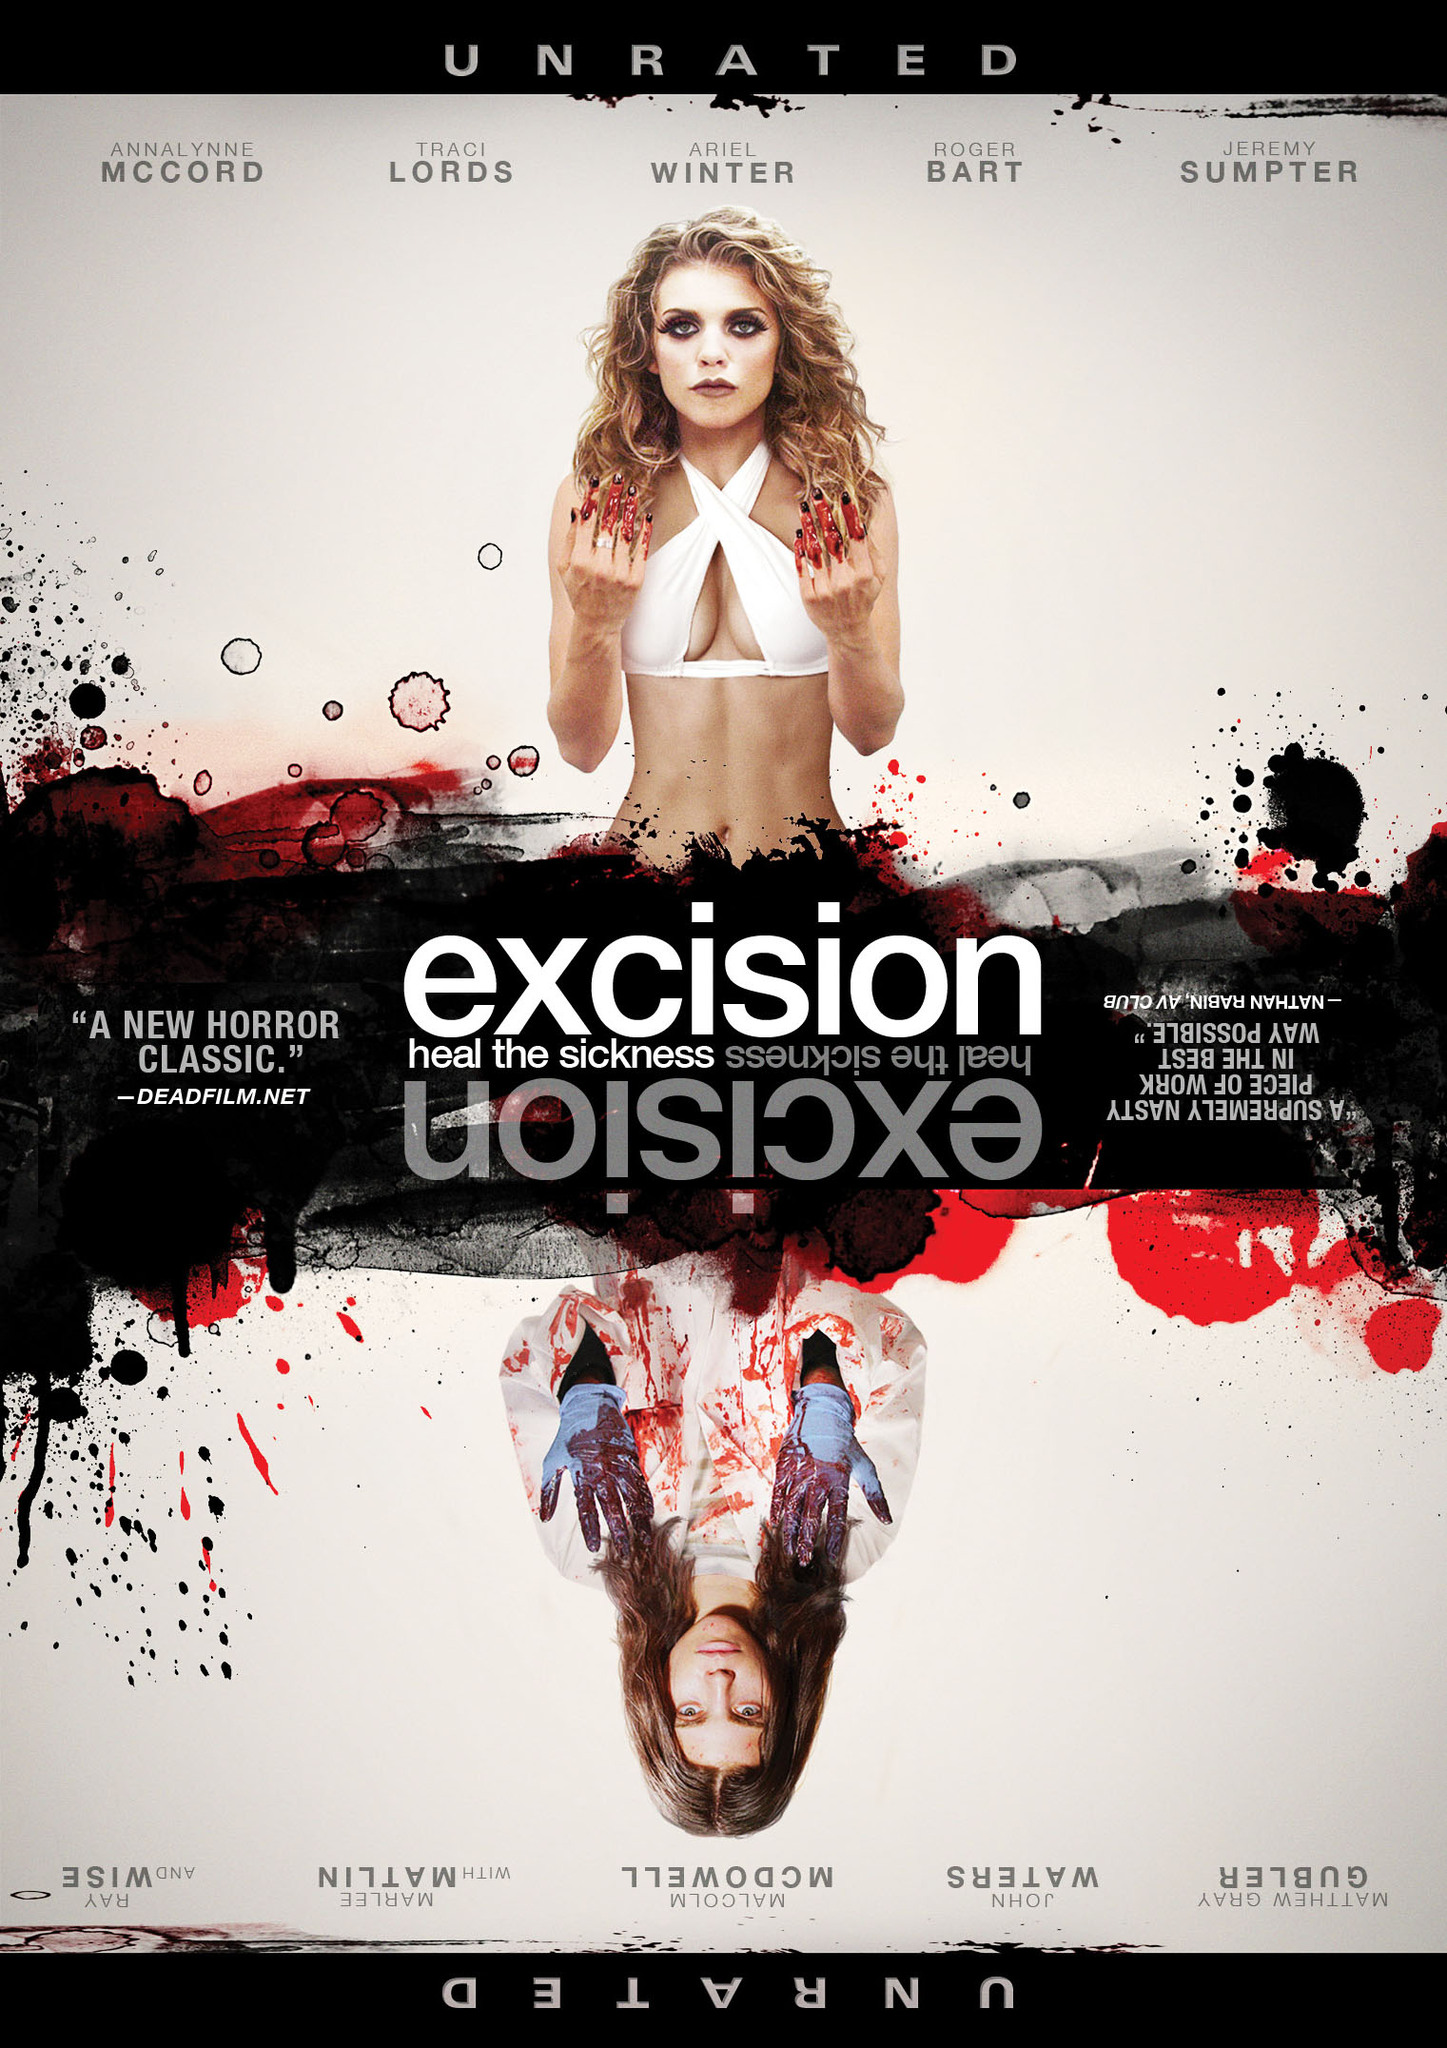 18+ Excision 2012 Hindi Dual Audio 1080p UNRATED BluRay ESubs 1.44GB Download